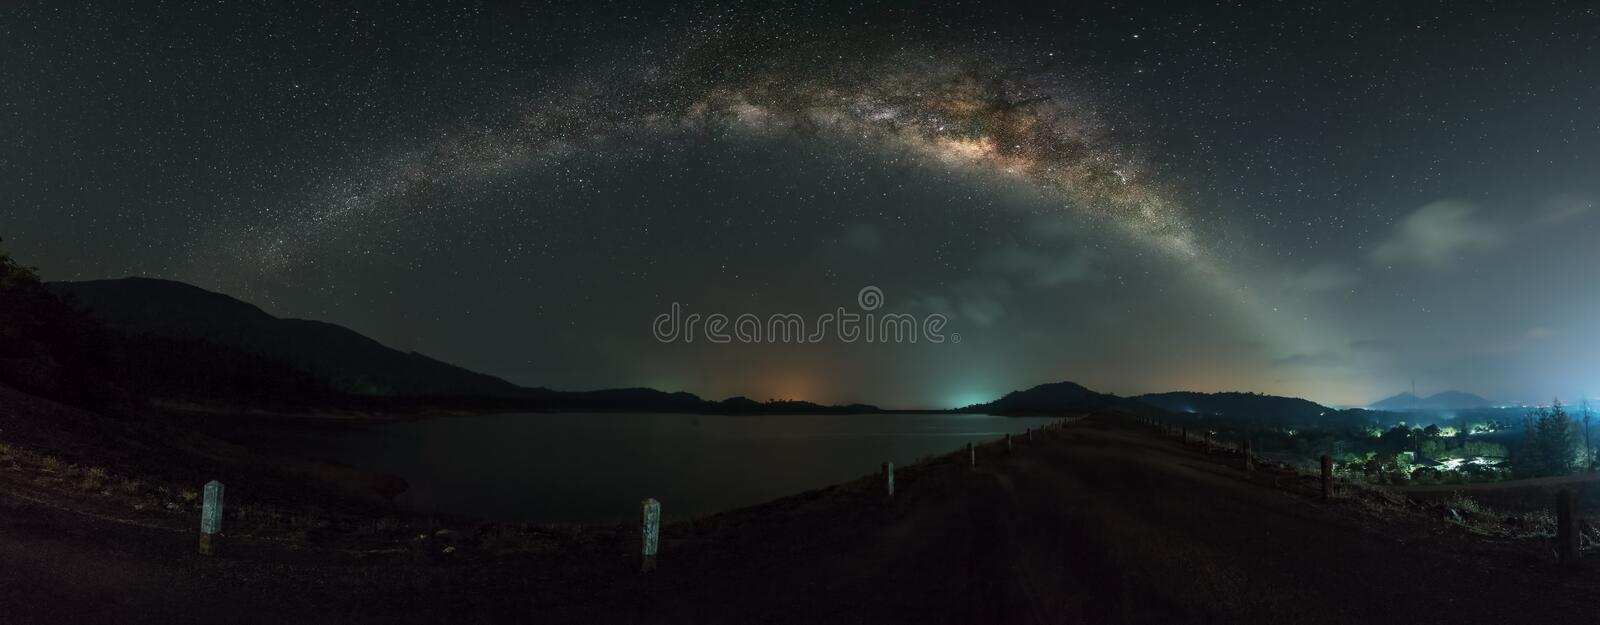 Panorama view of milky way galaxy over the dam.  royalty free stock images